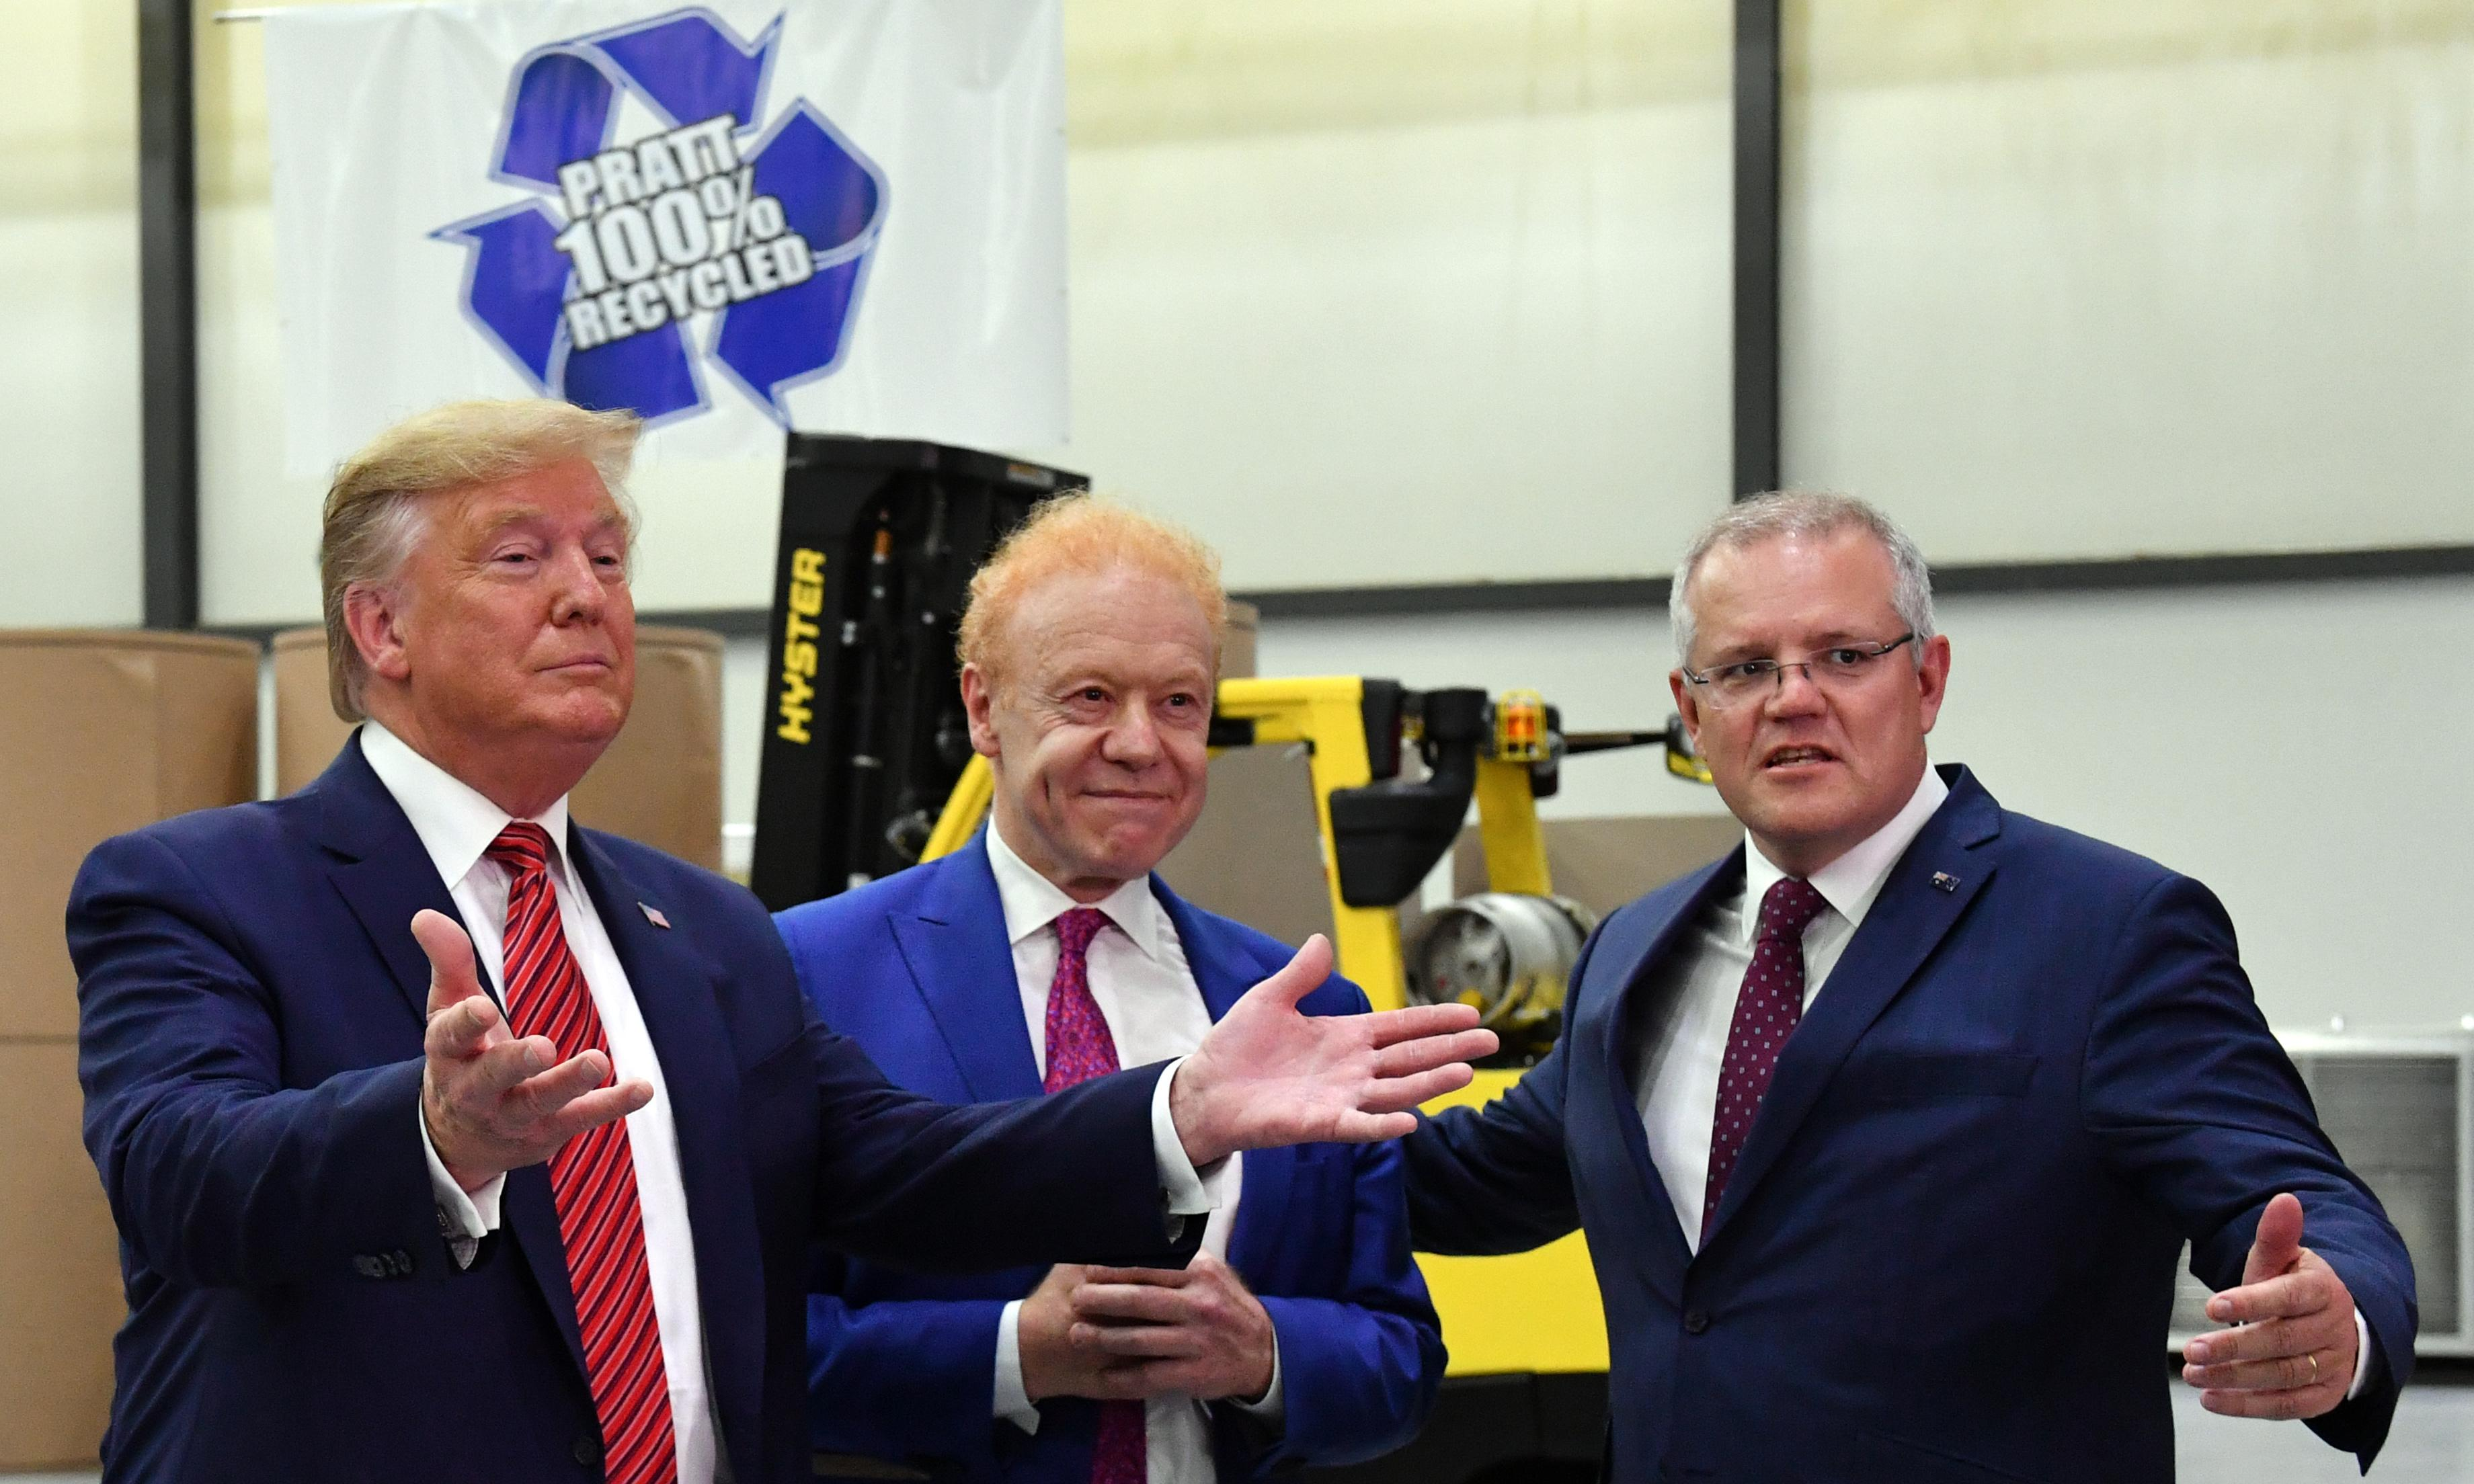 Morrison visits an Australian box factory in Ohio – and the Trump crowd goes wild